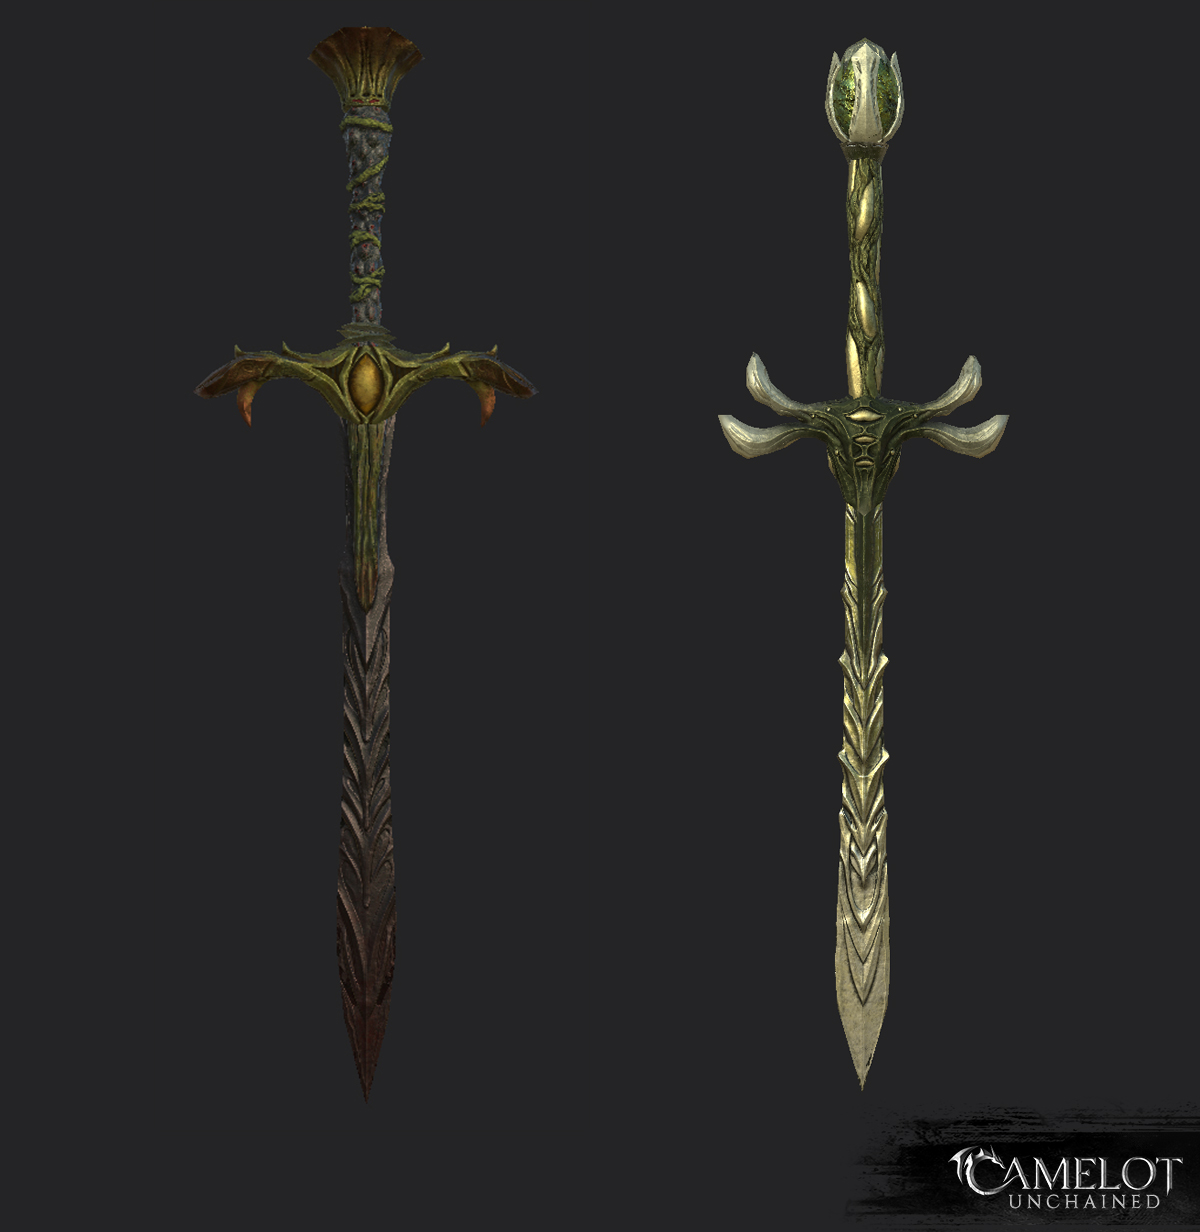 tdd_swords_1200